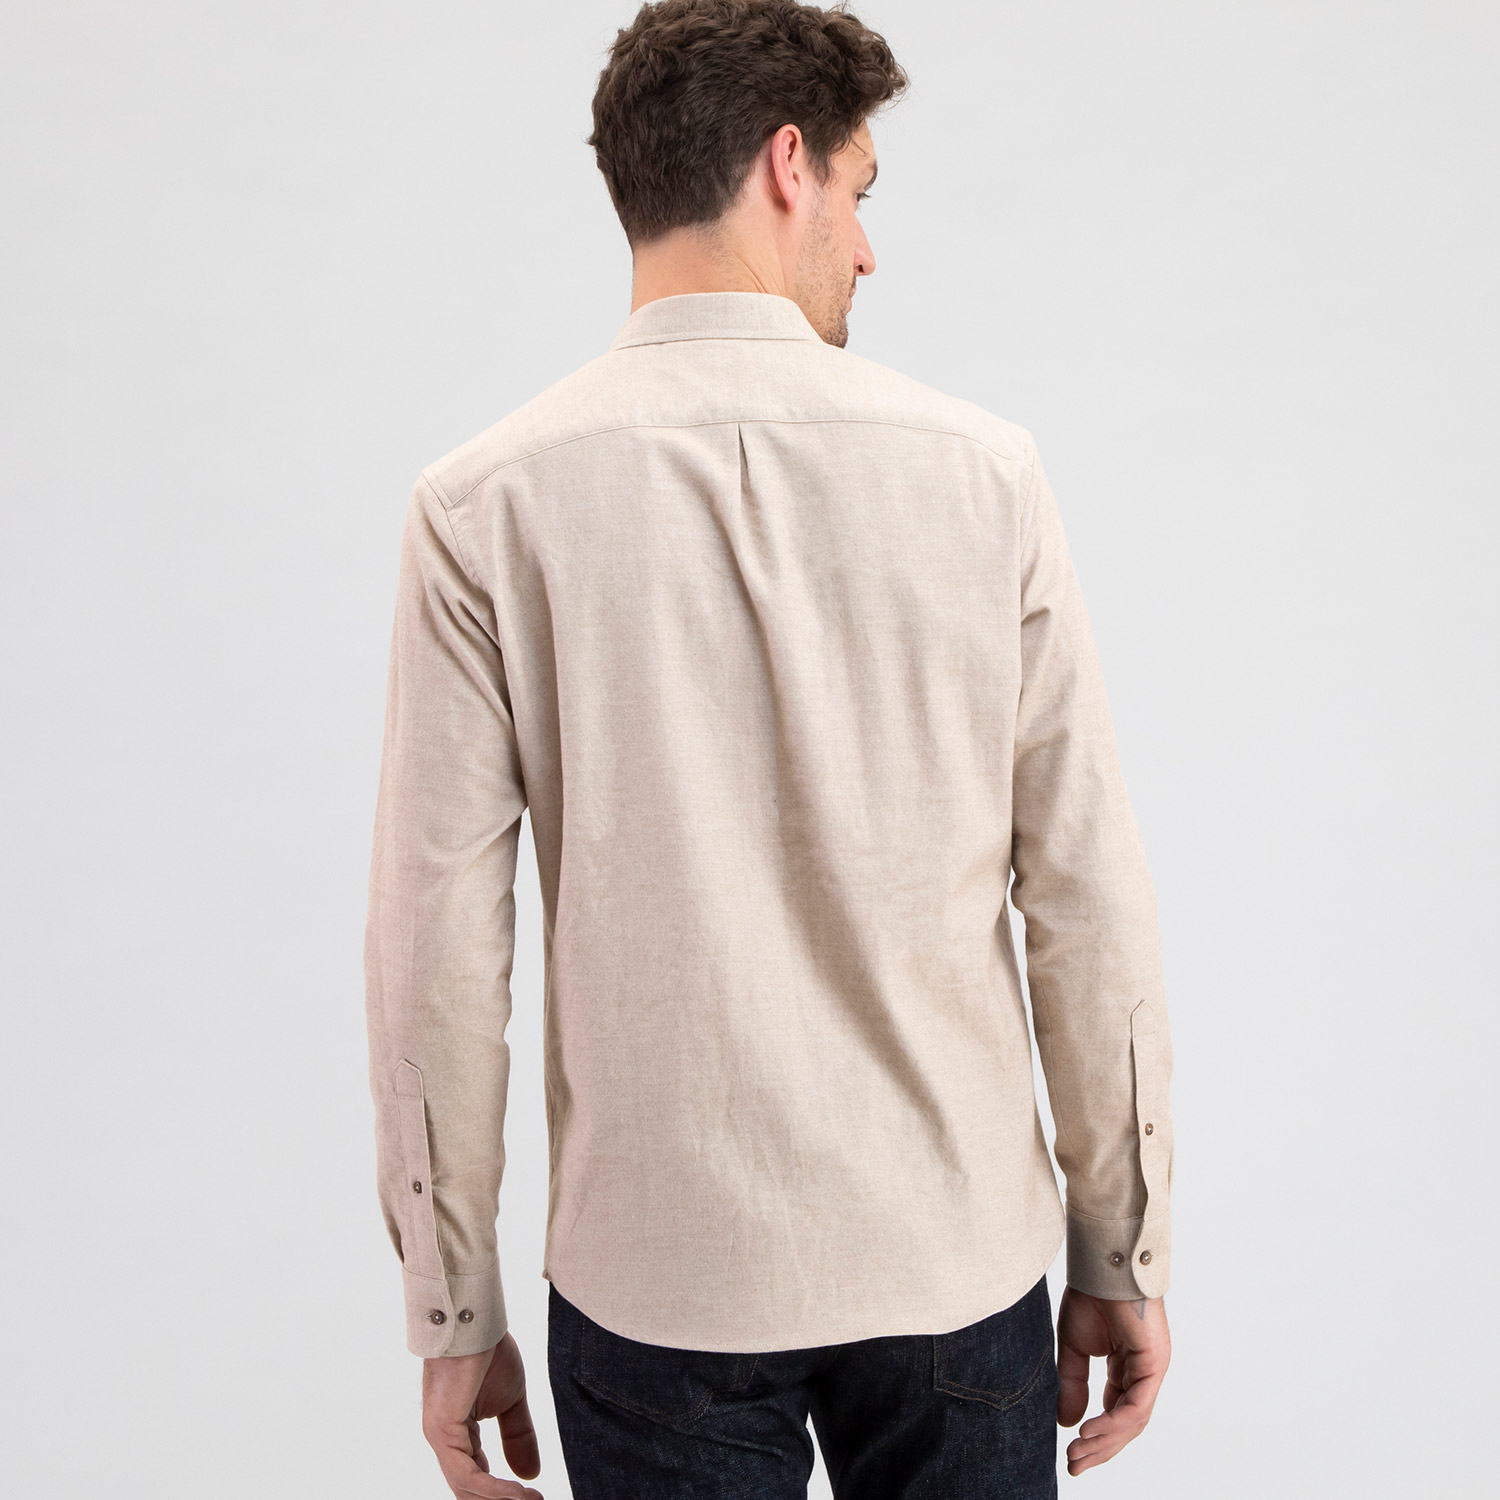 Cotton Cashmere Heather Tan